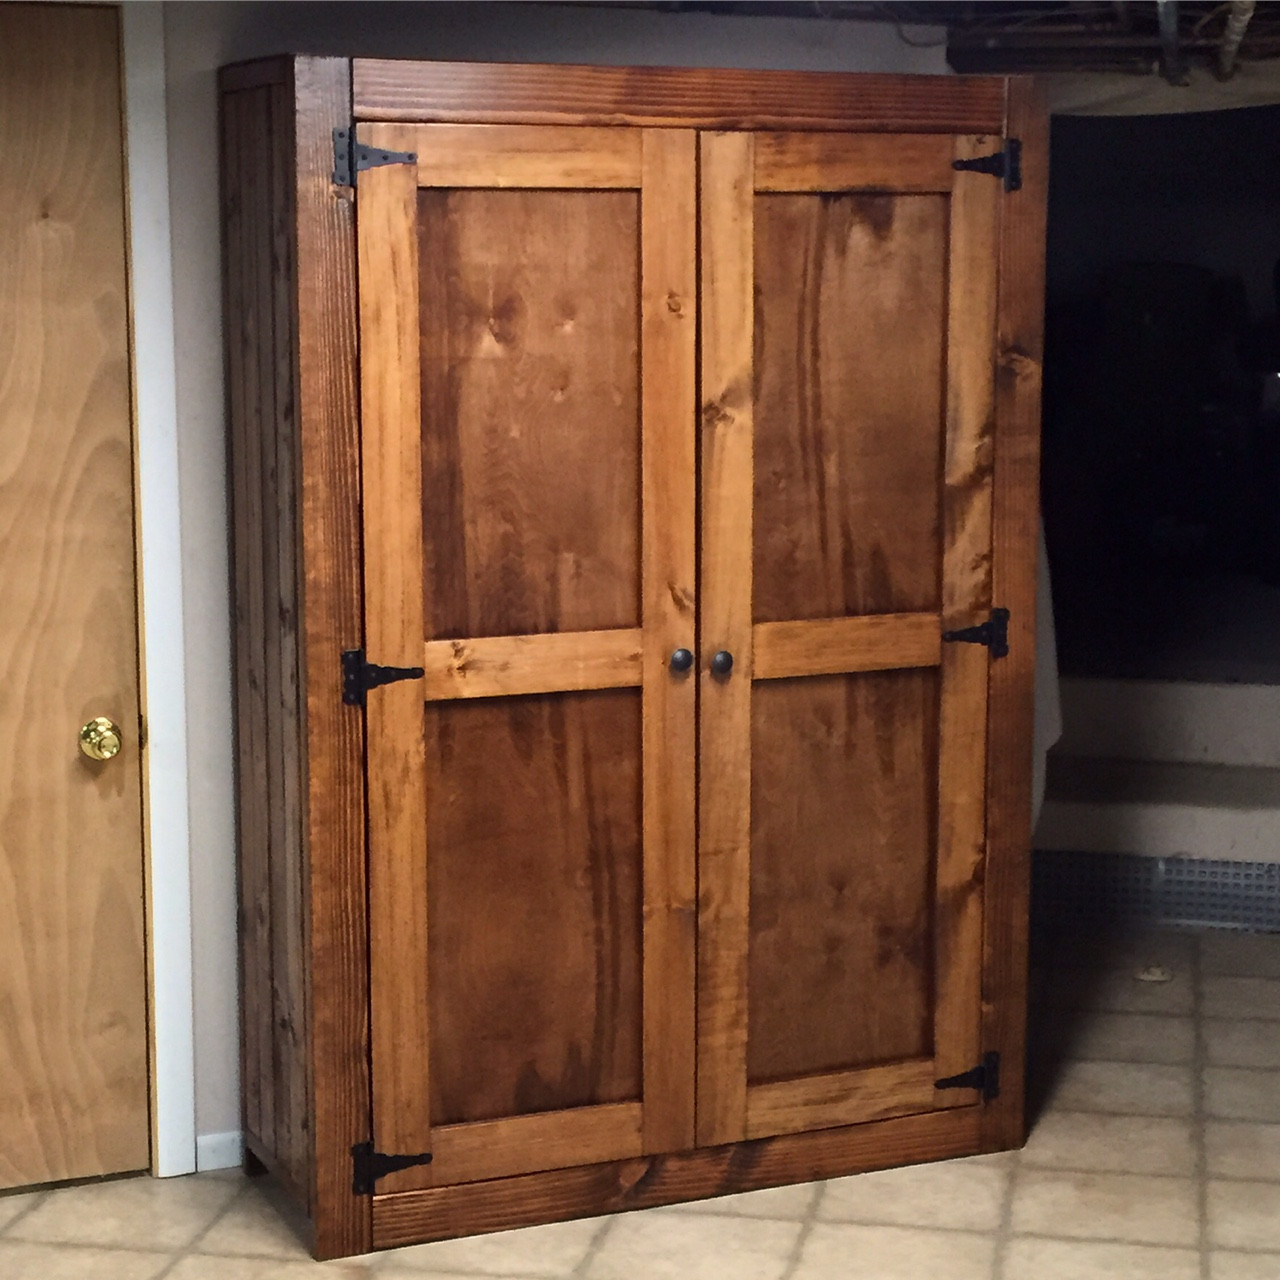 Best ideas about DIY Kitchen Pantry Cabinet . Save or Pin Ana White Now.